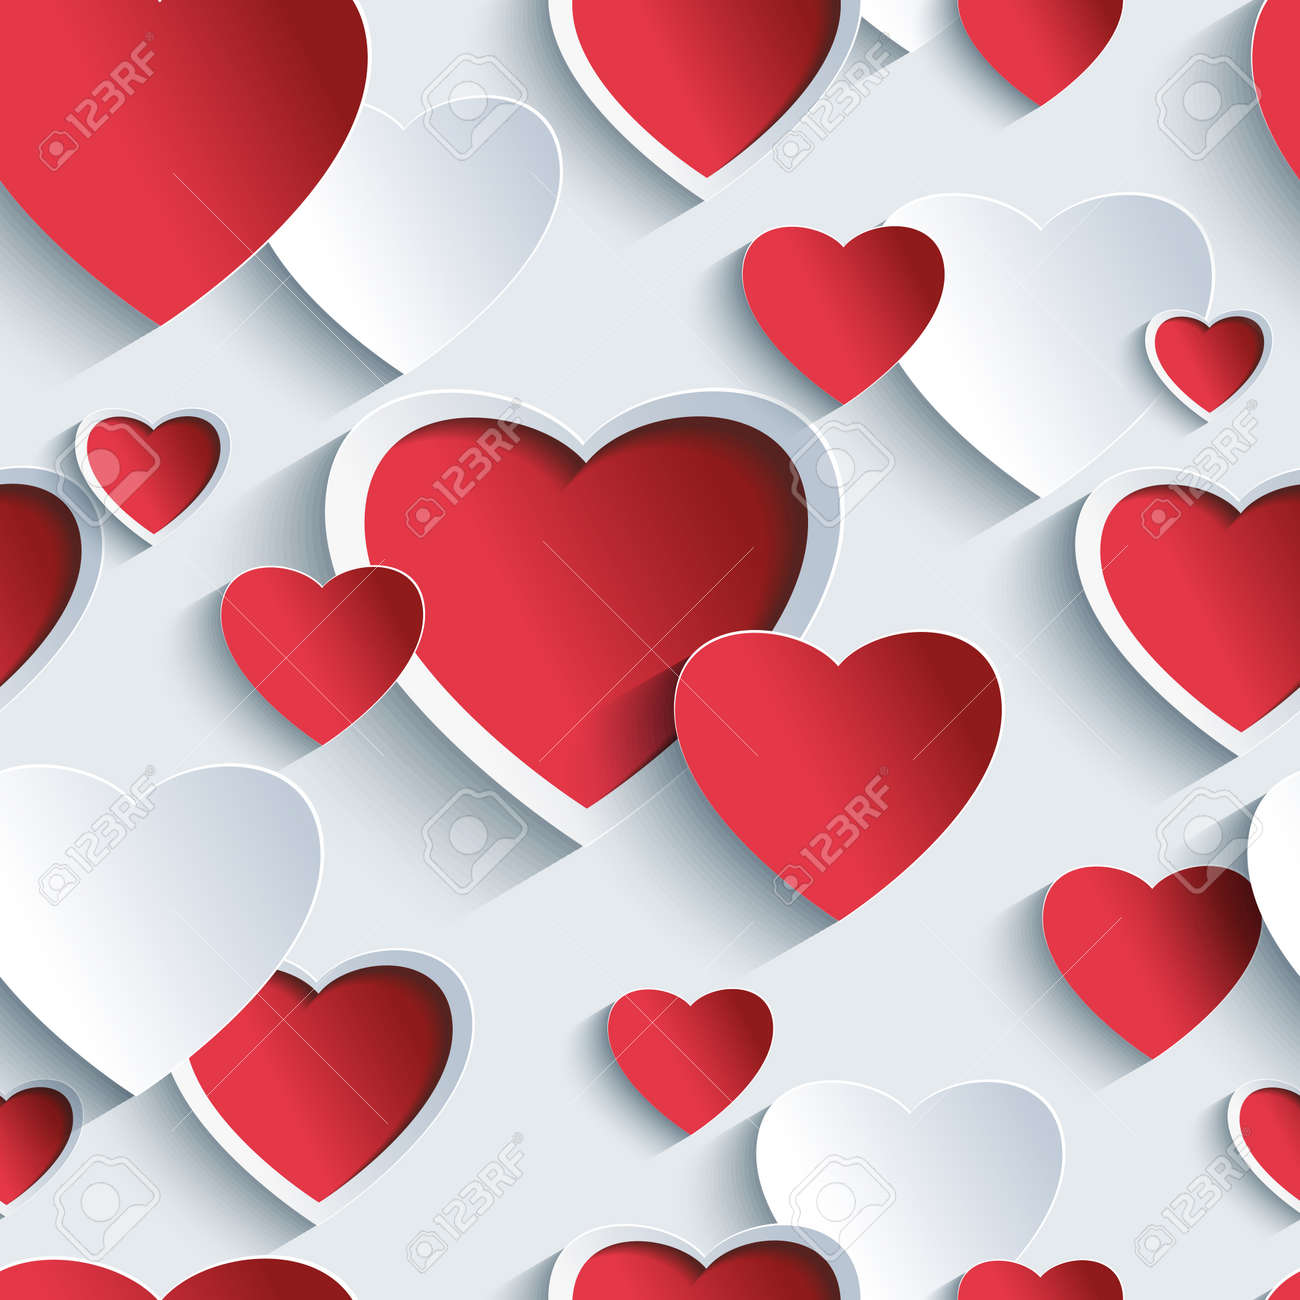 Stylish Valentines day background seamless pattern with red - grey 3d hearts. Creative abstract wallpaper with hearts. Love card for Valentines day. Vector illustration. - 33647215